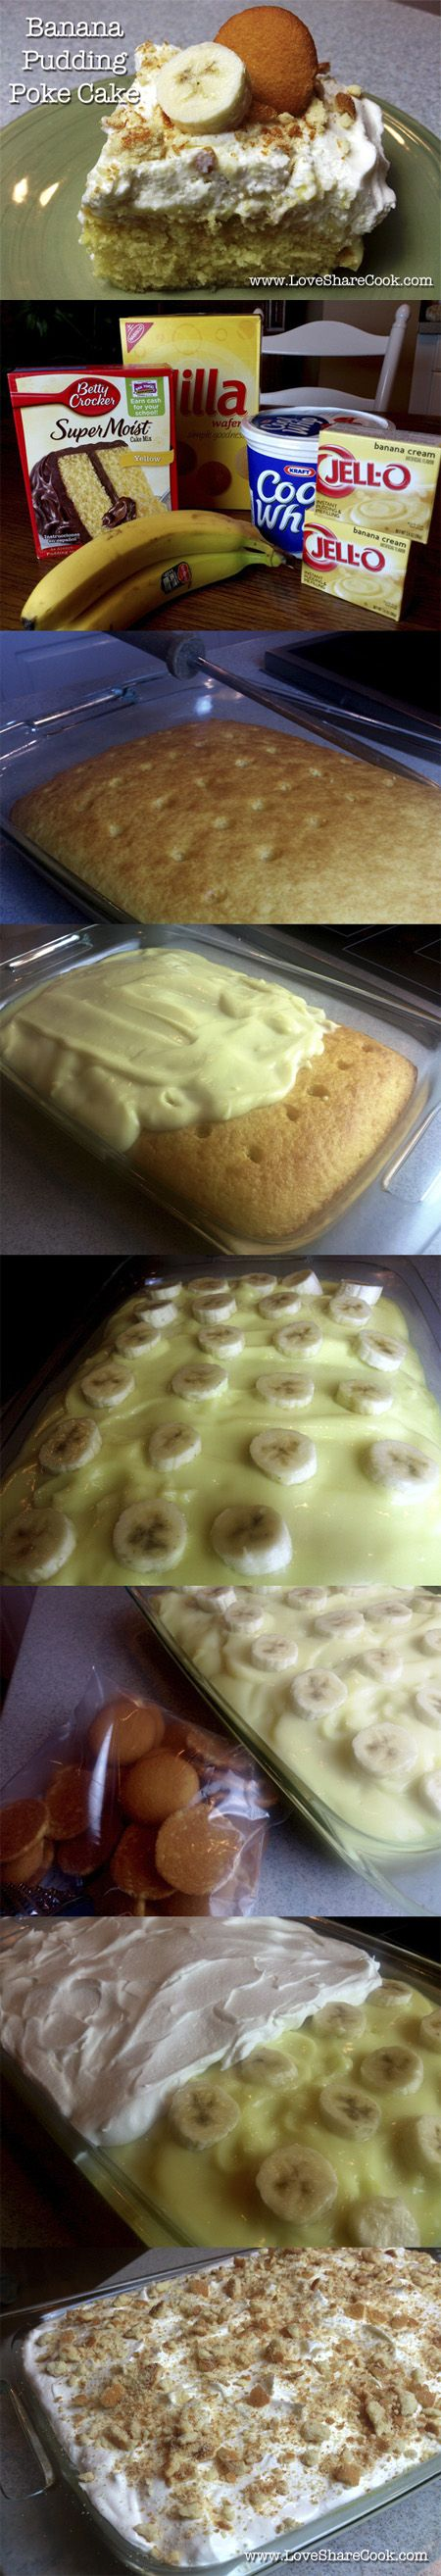 PokeCake Banana pudding...I made this for my fiancee on his Birthday.  He took it to work and it was a huge hit.  I've actually made this and it was good